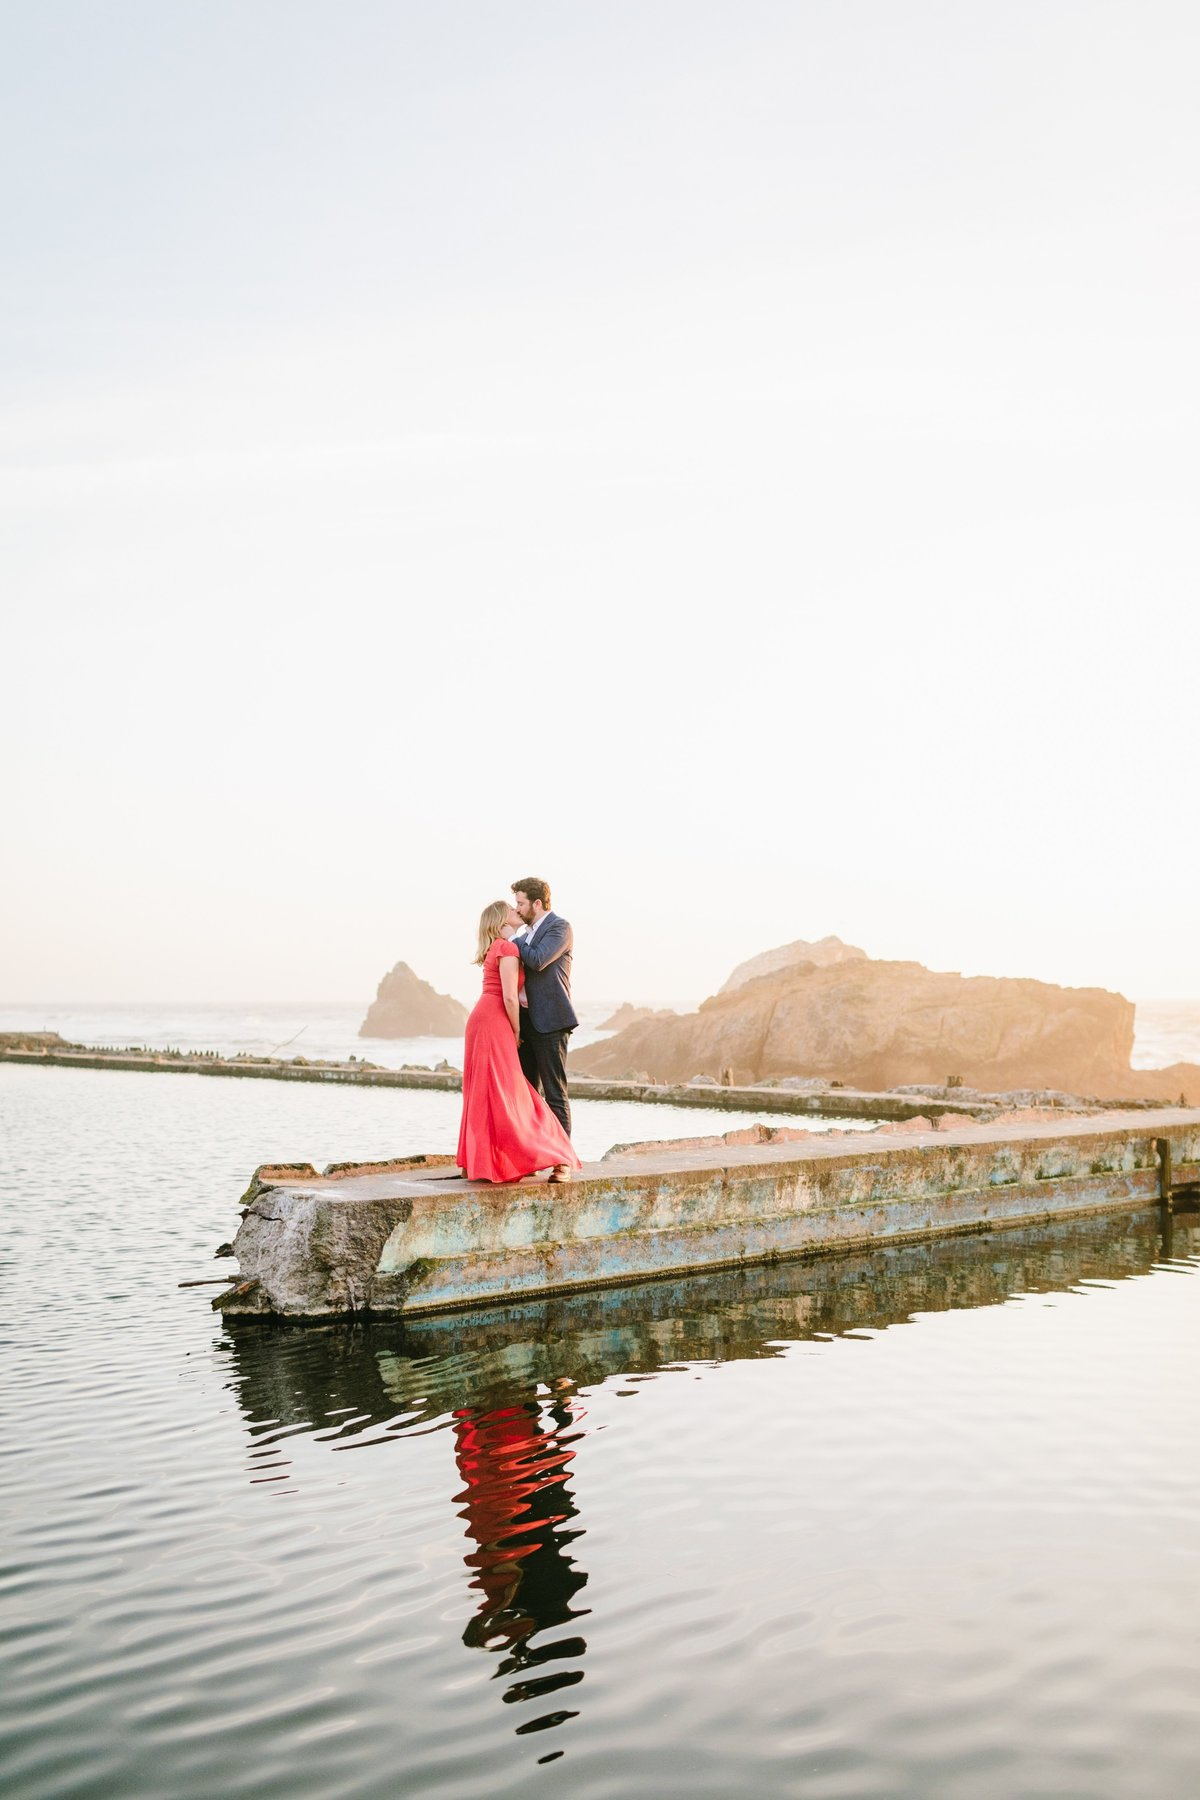 Best California Engagement Photographer-Jodee Debes Photography-121